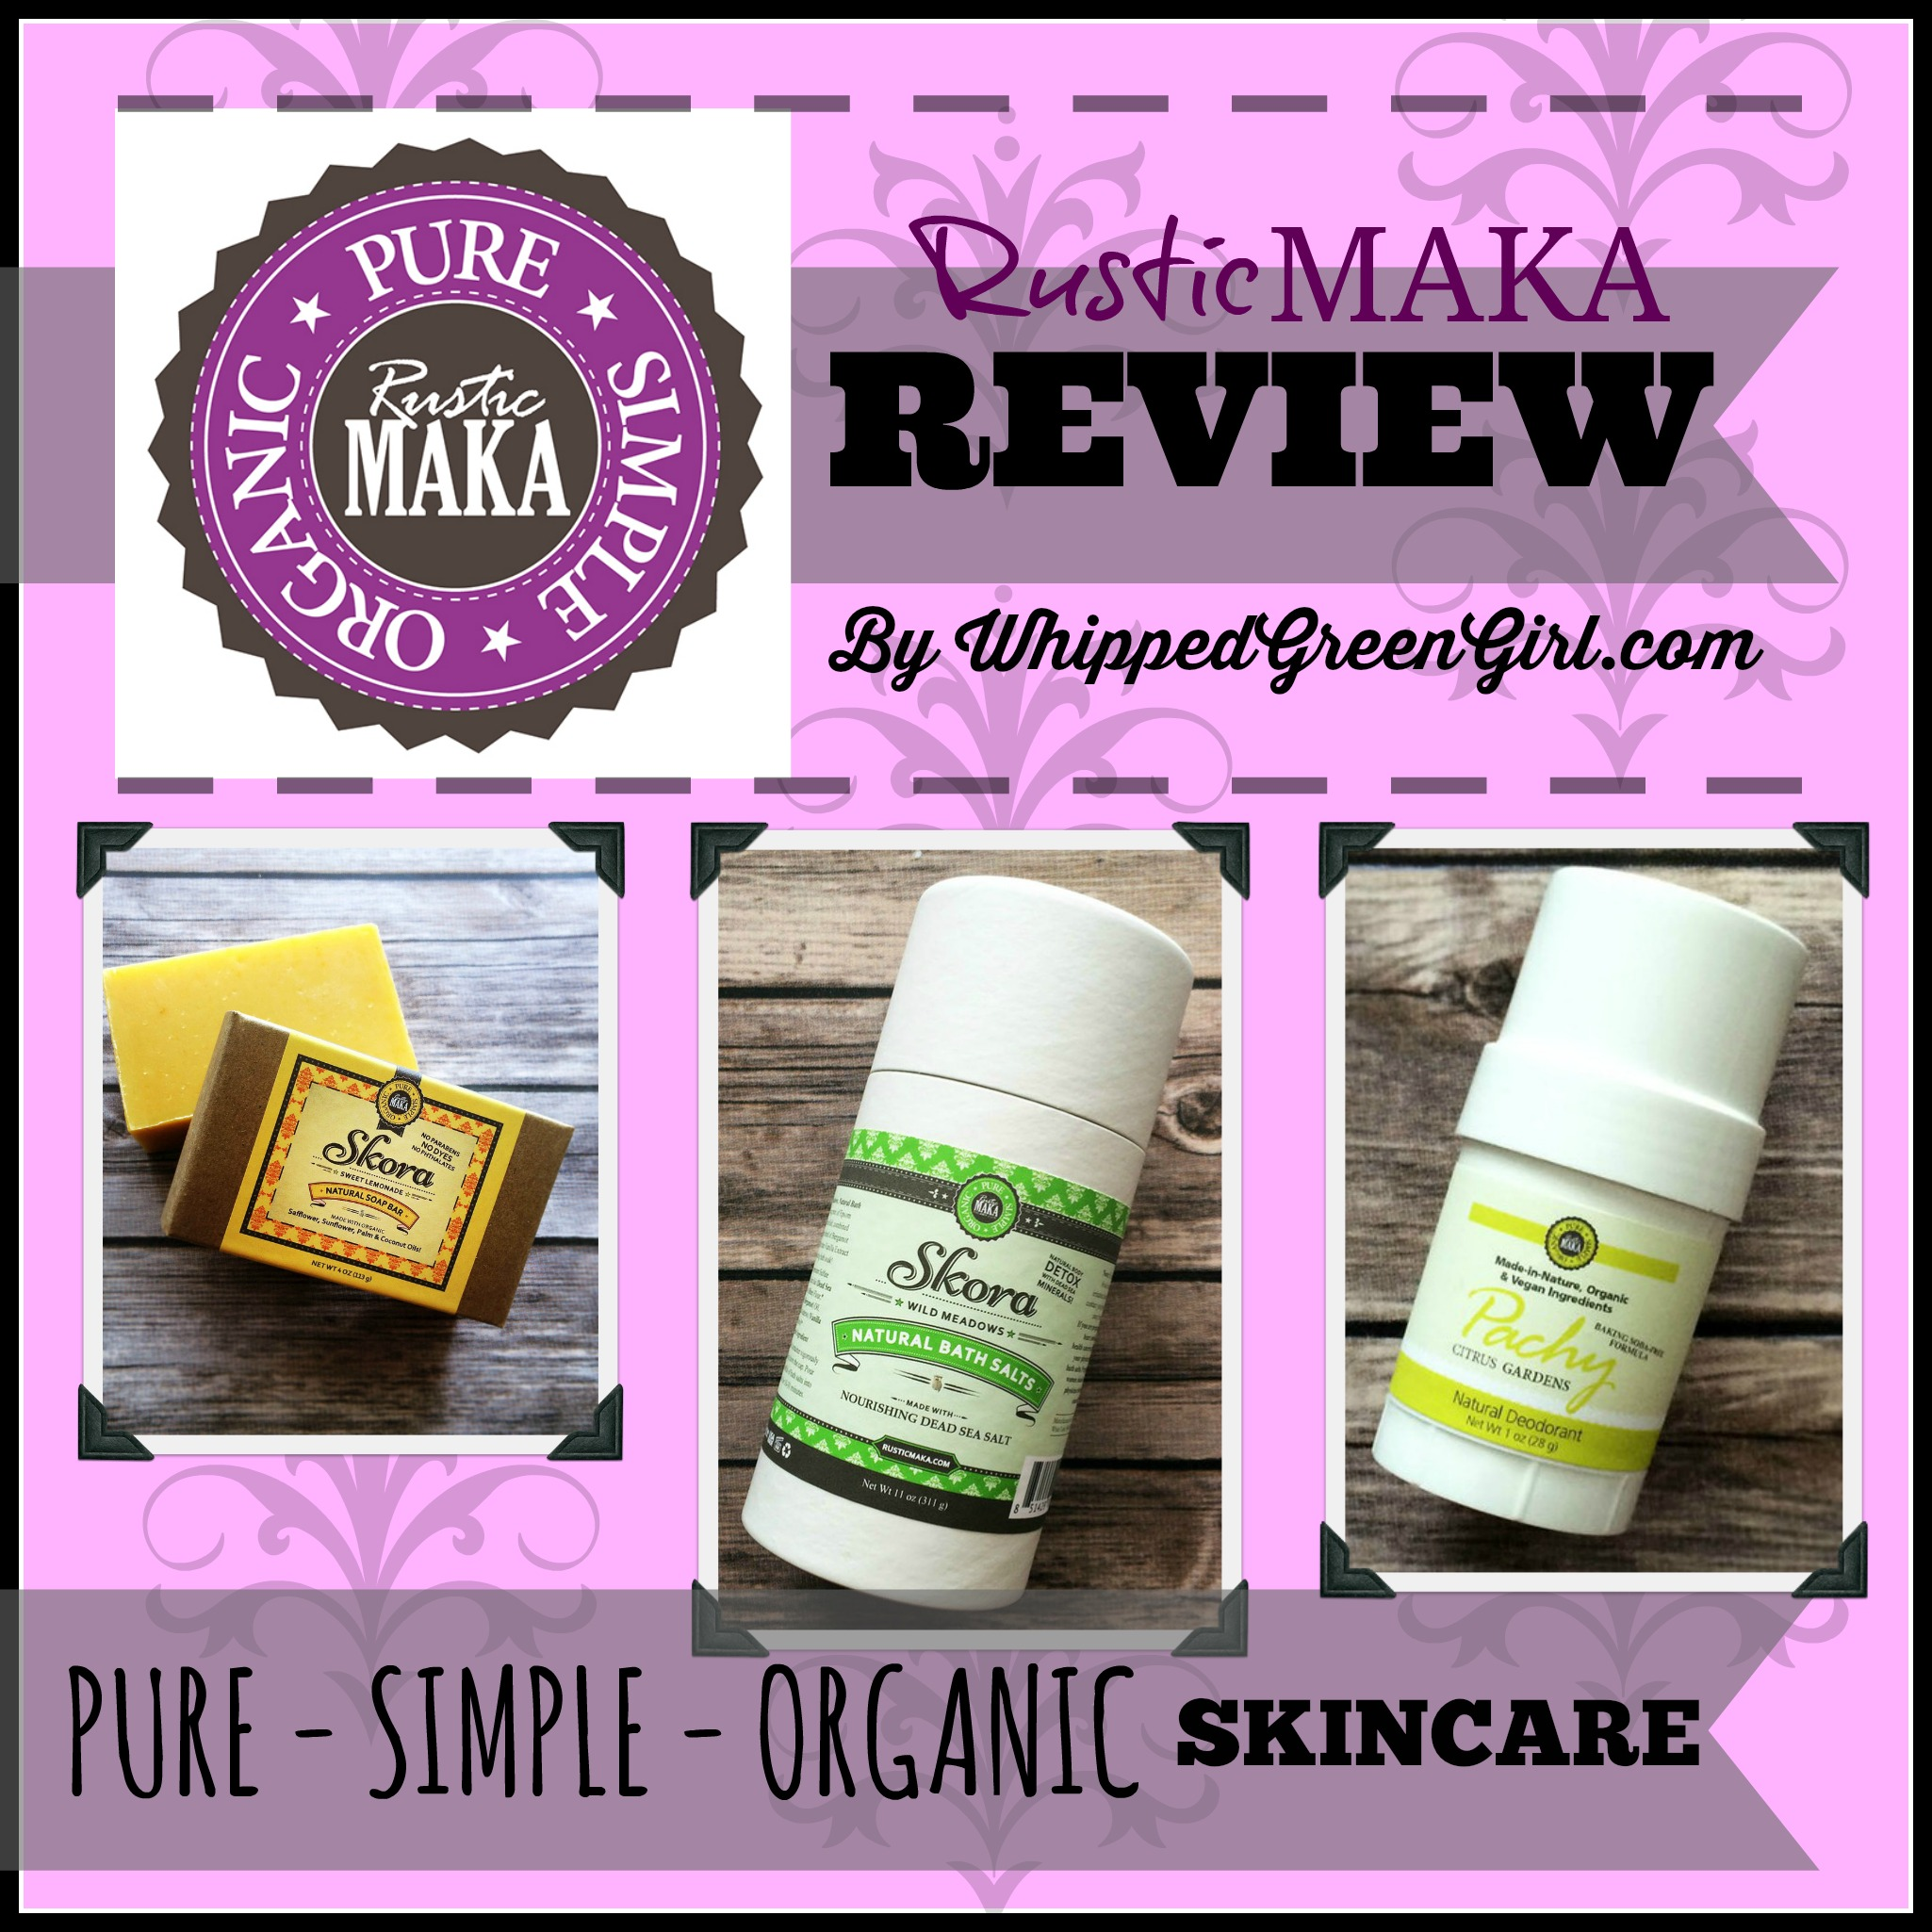 Rustic Maka (All-Natural Skincare) Review